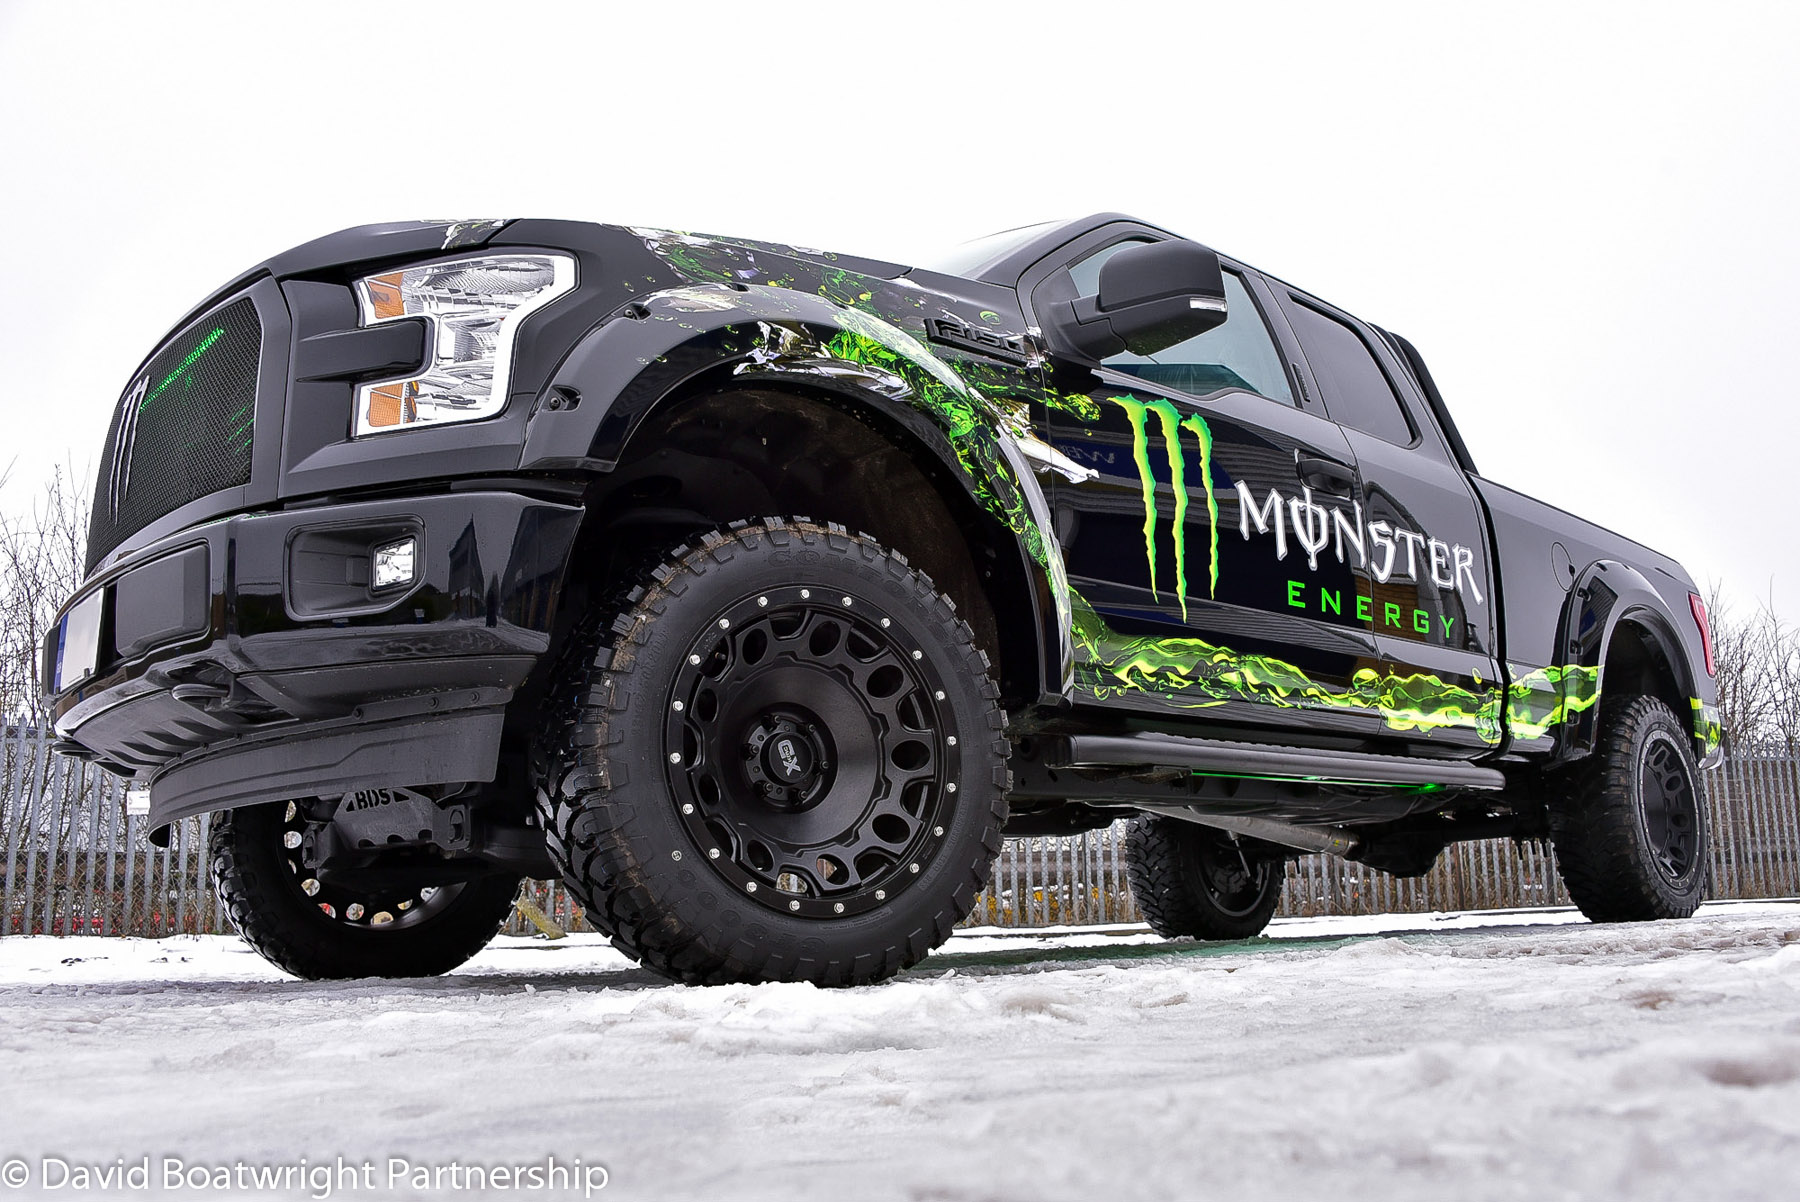 Monster Energy Boatwright F150 Truck